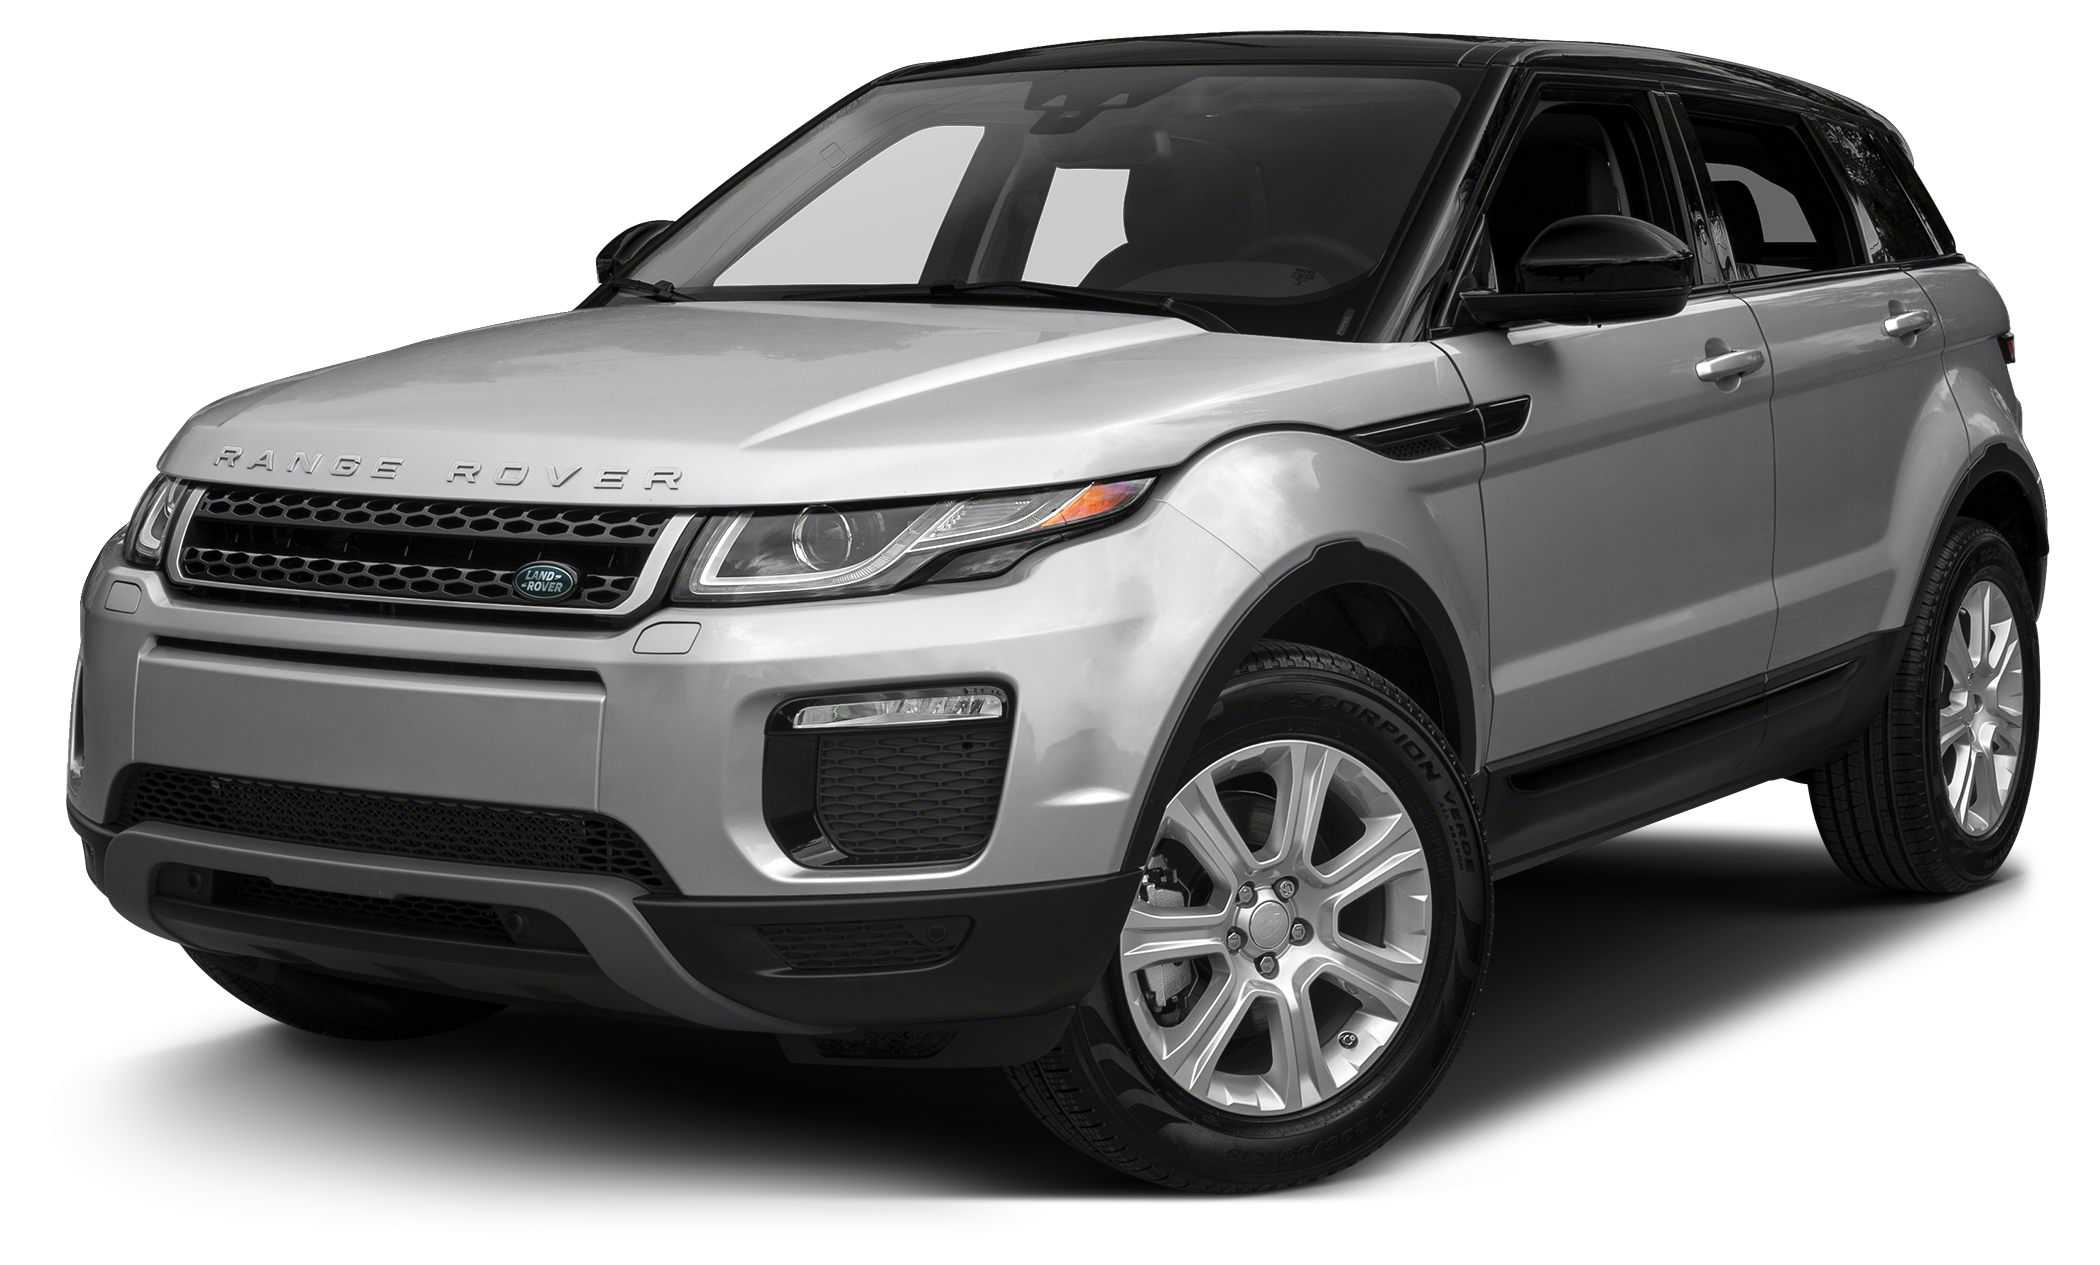 2017 LAND ROVER RANGE ROVER EVOQUE for Sale in Tampa FL